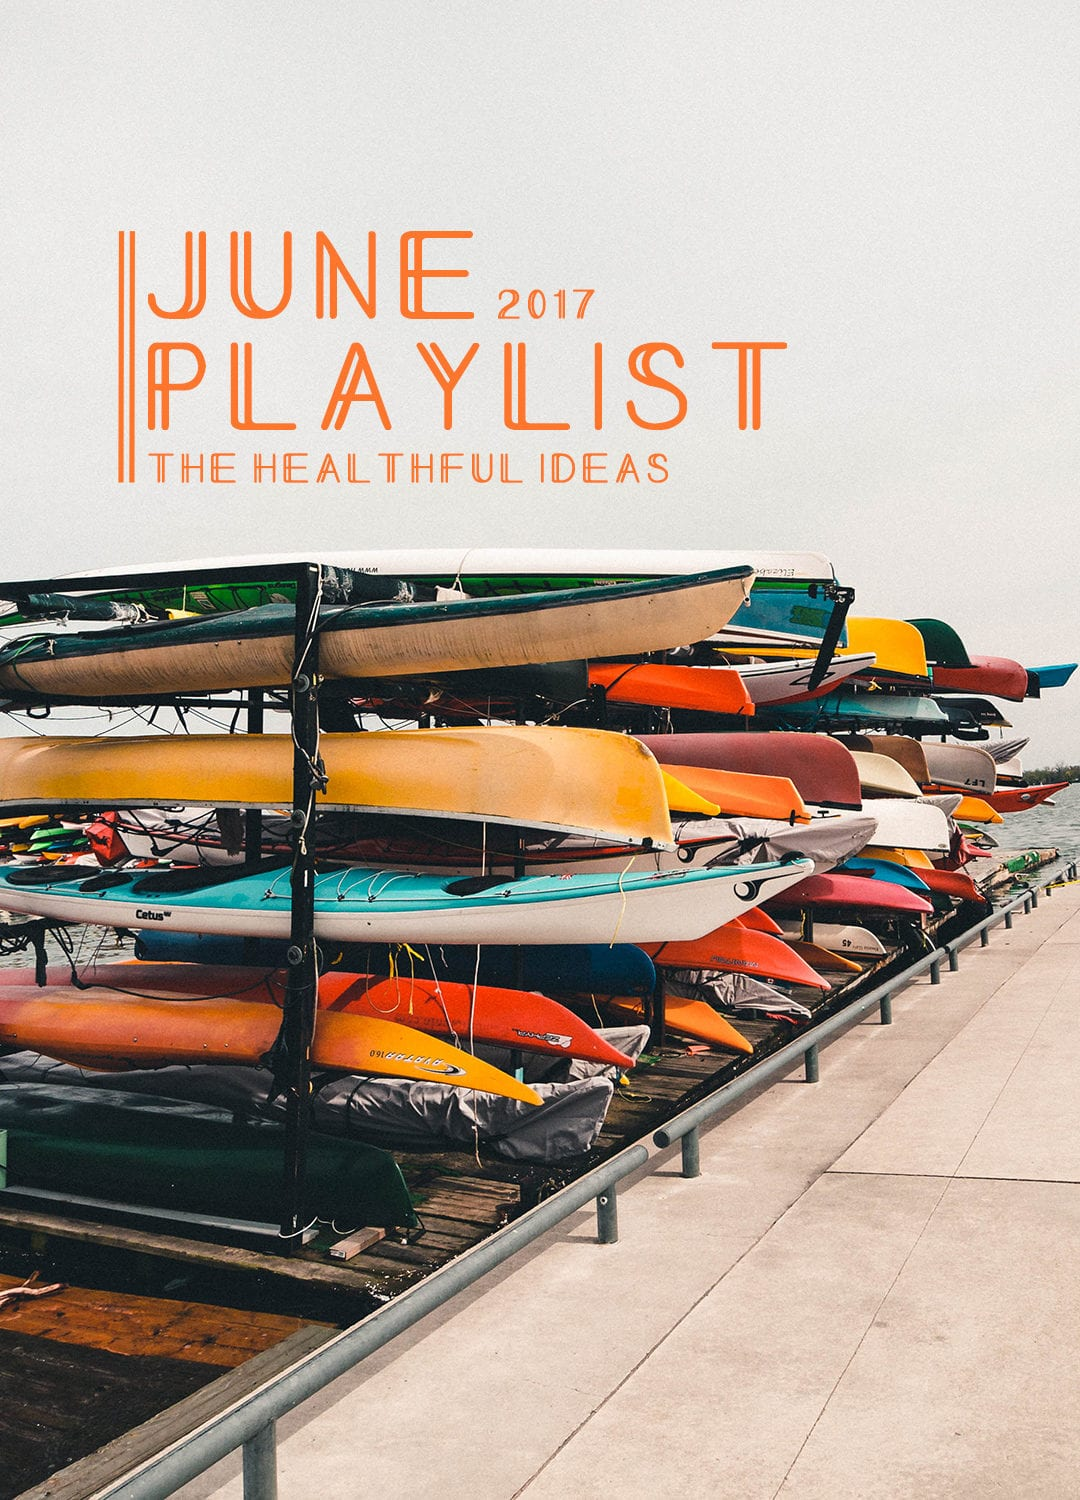 23 songs you need to listen to this month! (June 2017 edition) - I've been listening to these on repeat - so good! | thehealthfulideas.com